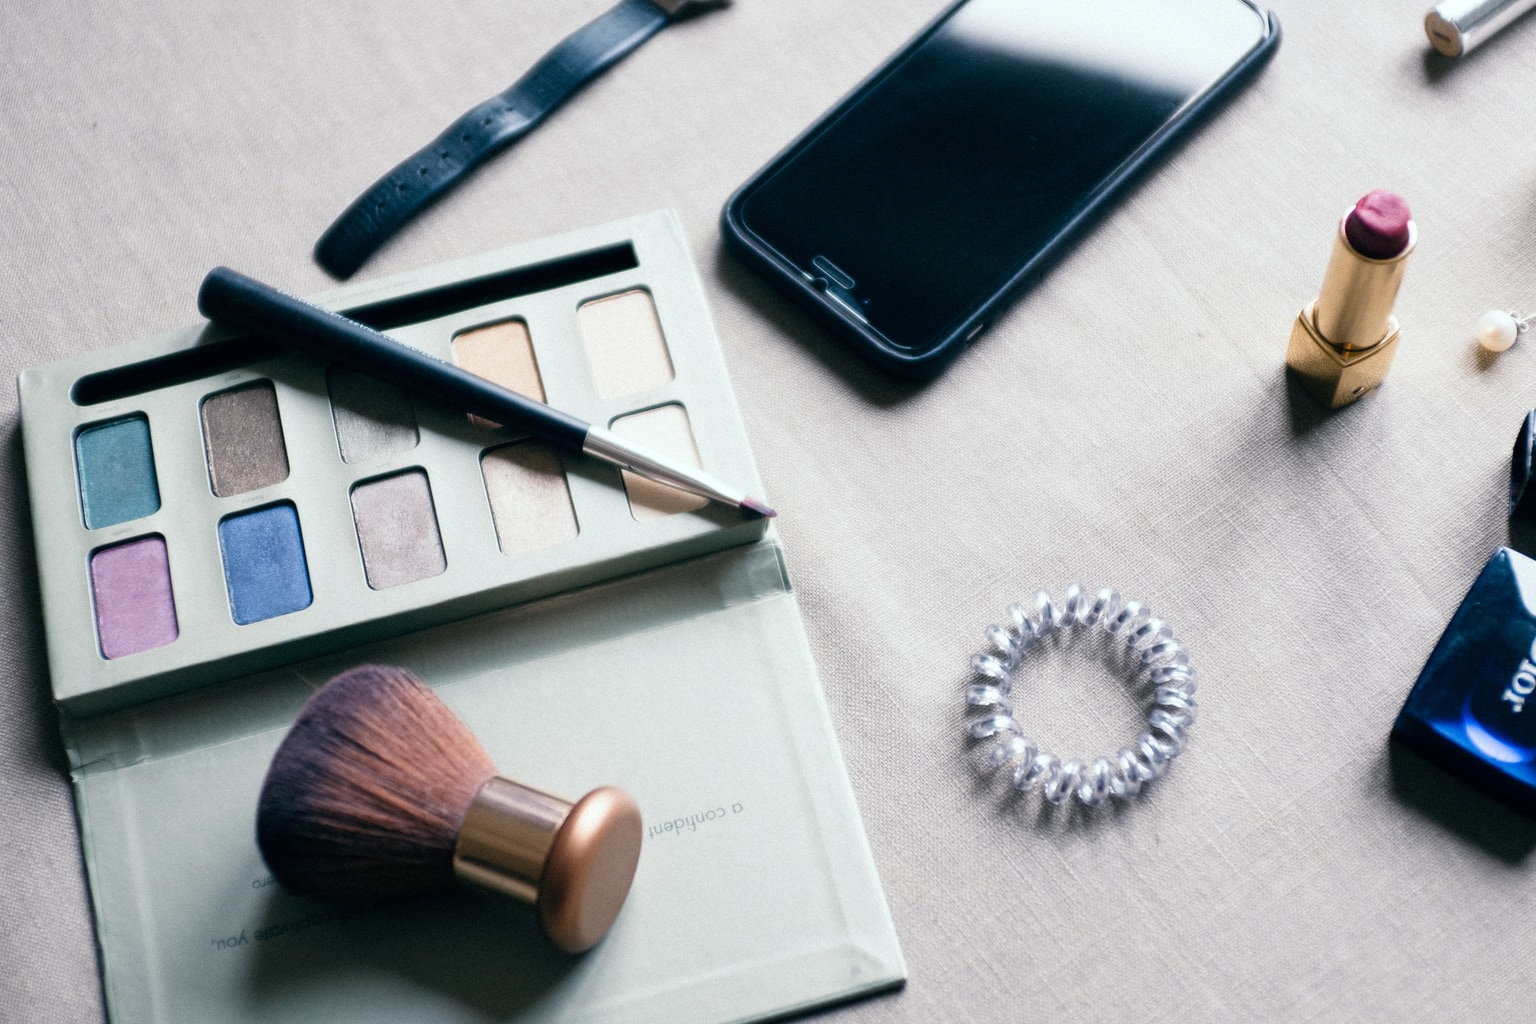 Makeup on a table with iphone and eyeshadow